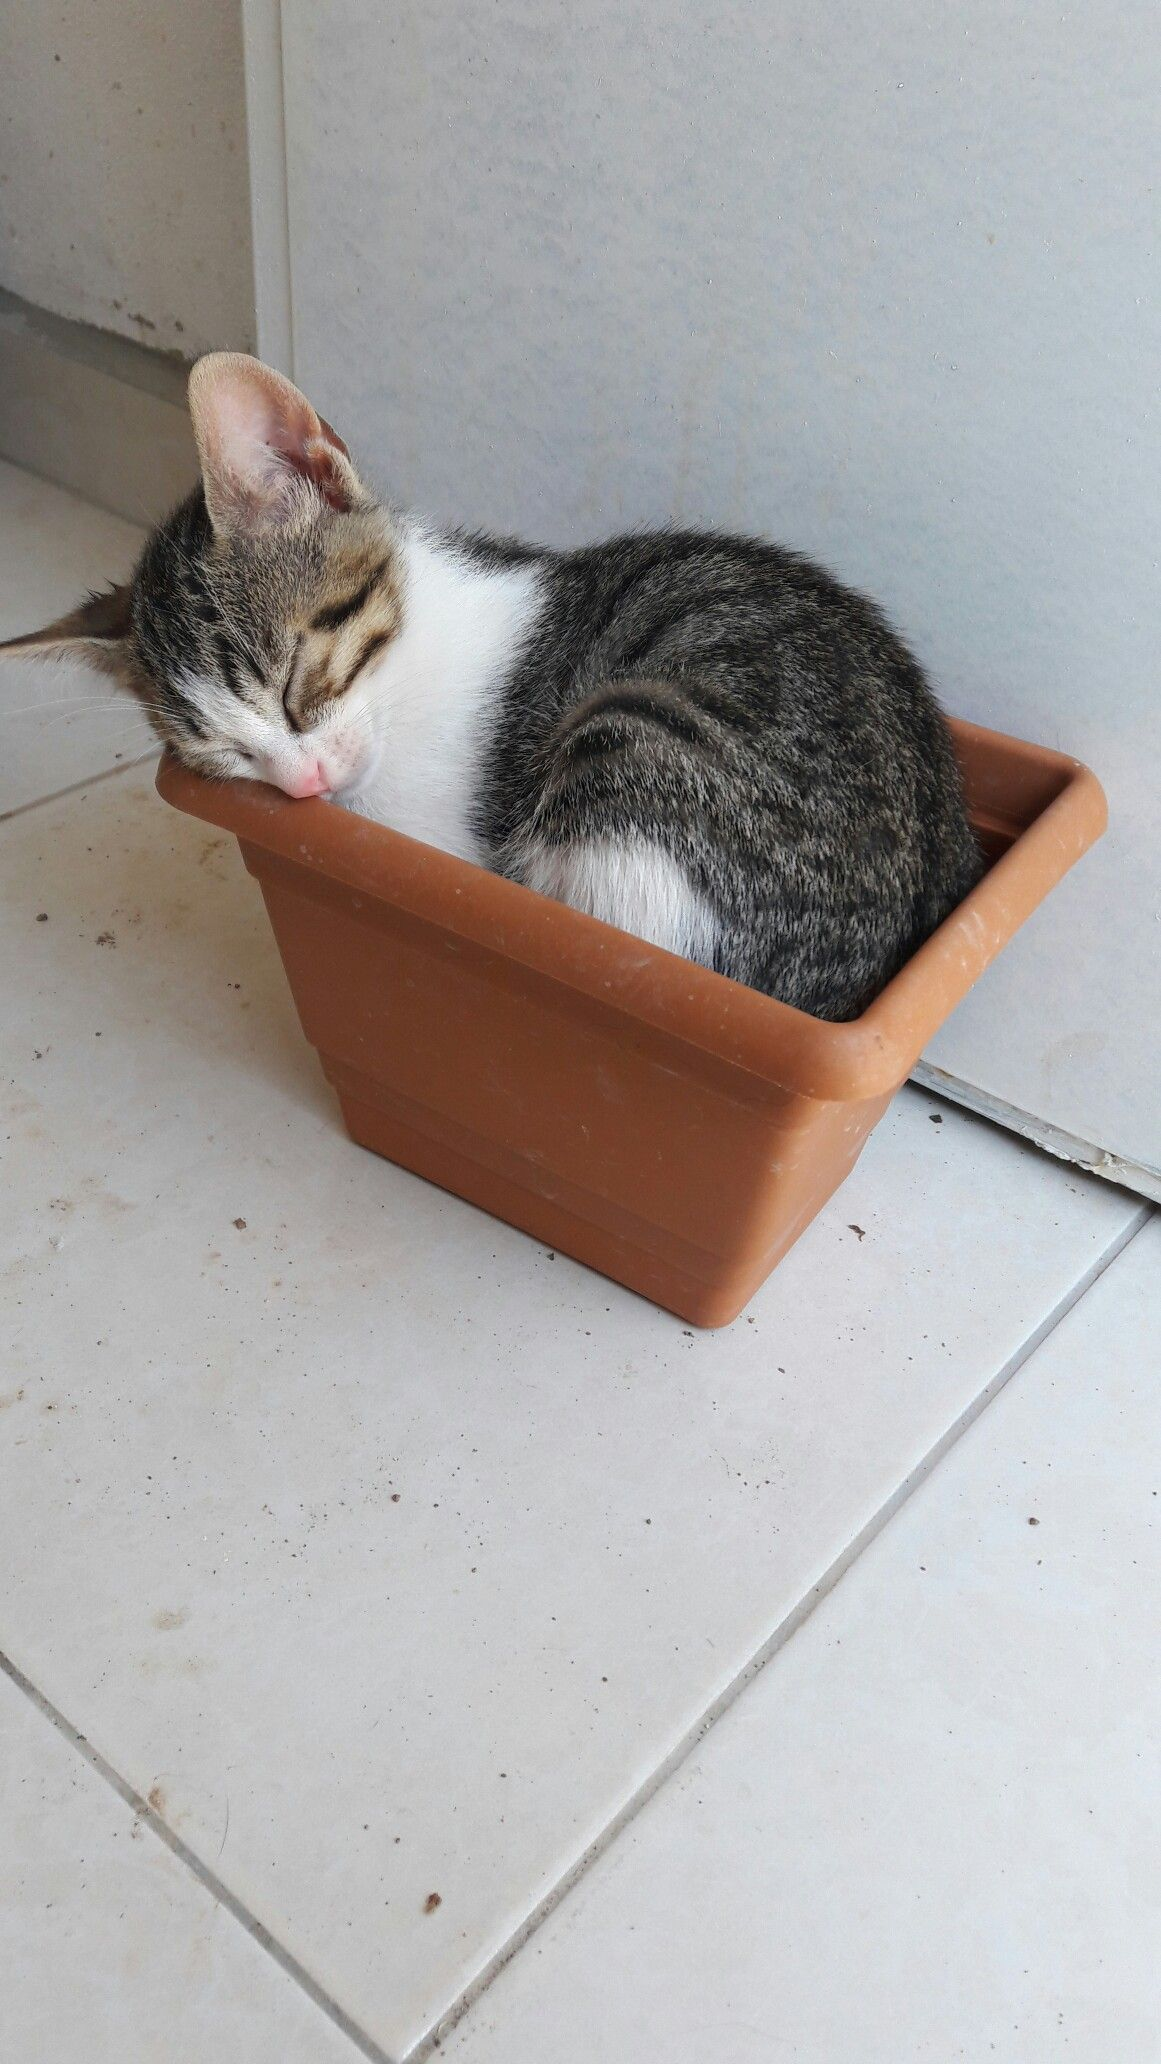 Pin By Homeagain Petrescuer On Cats Cute Cats Kittens Cat Box